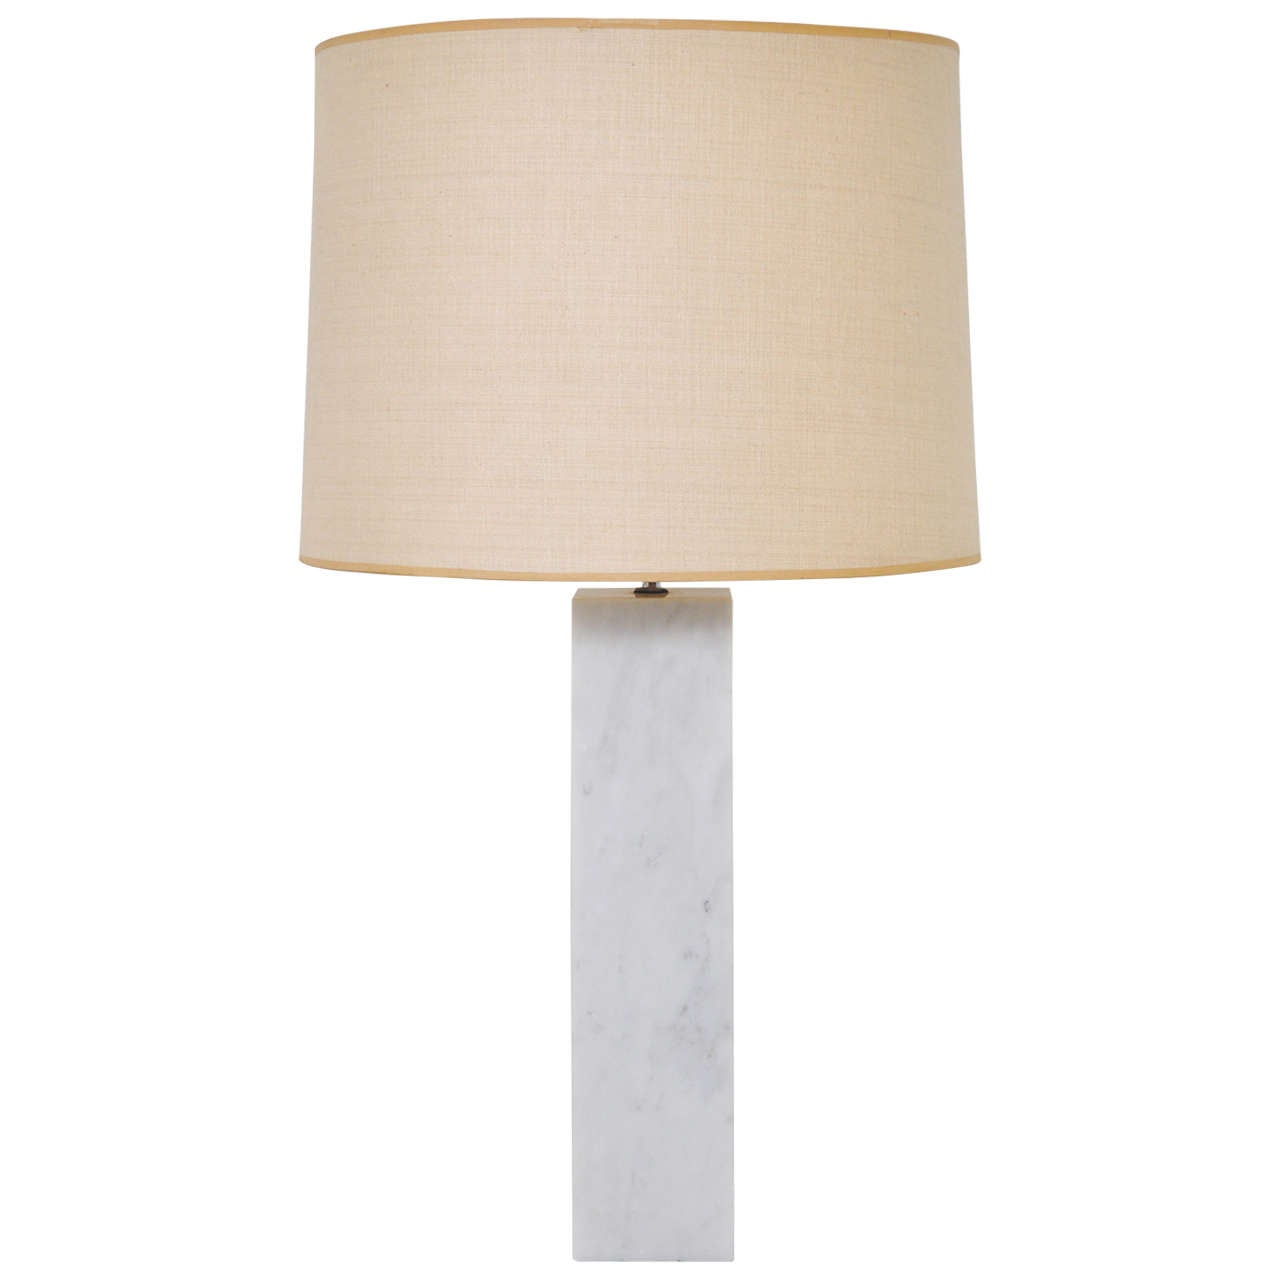 Robert Sonneman Marble Table Lamp